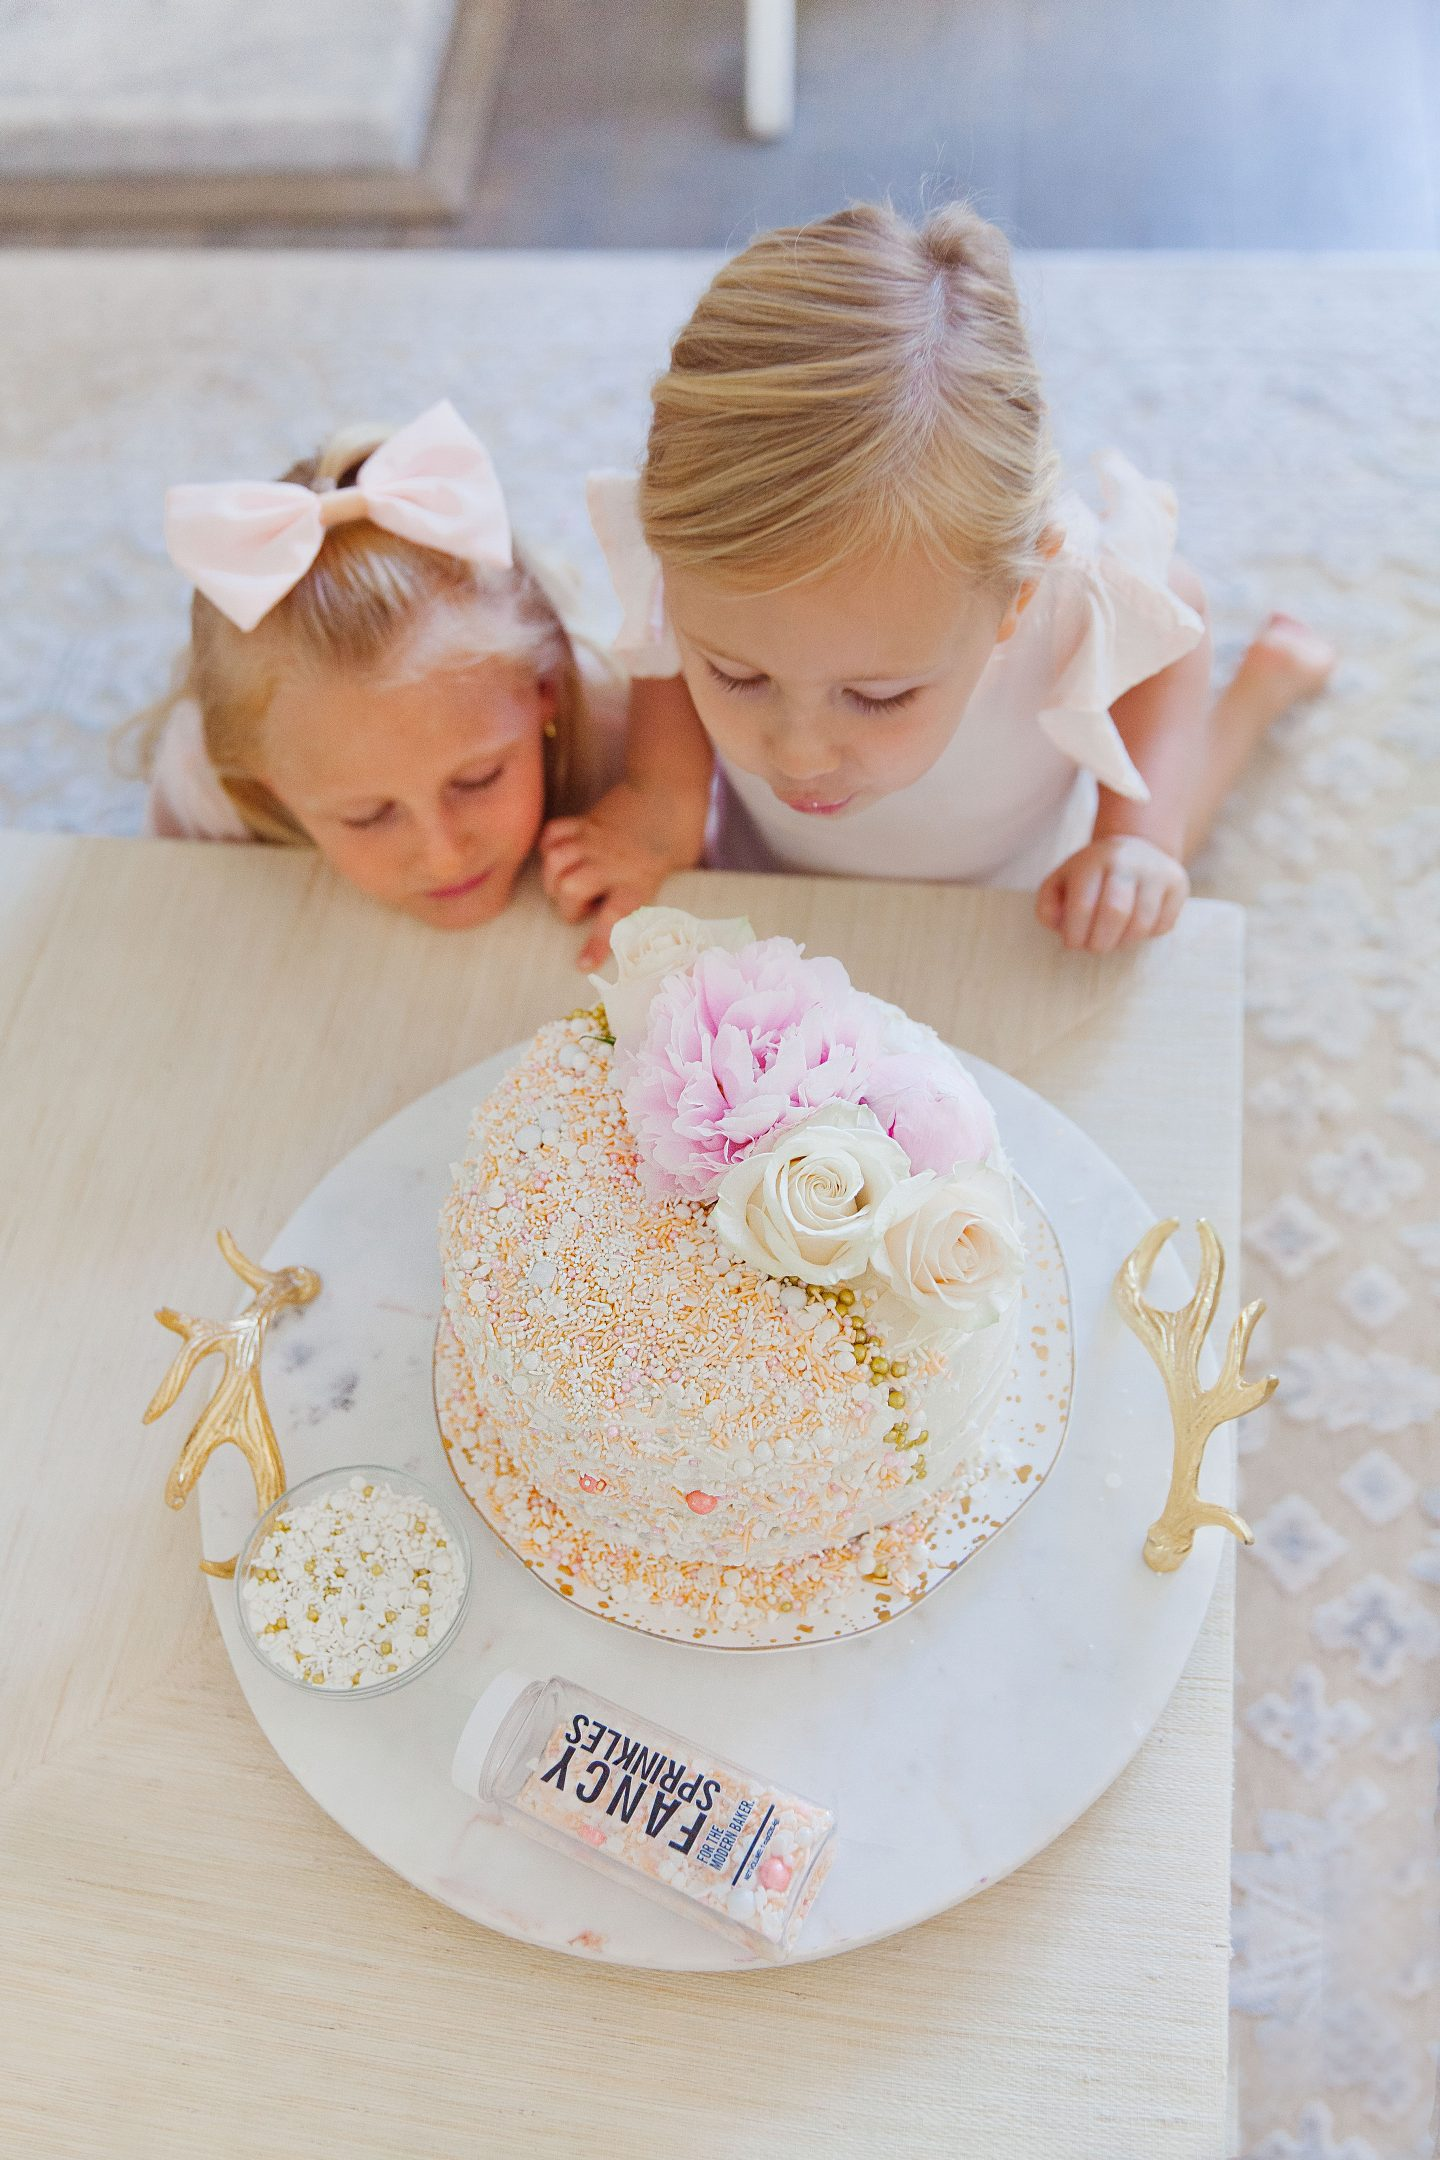 Fancy Sprinkles explosion cake baking featured by top San Francisco fashion blogger Lombard and Fifth